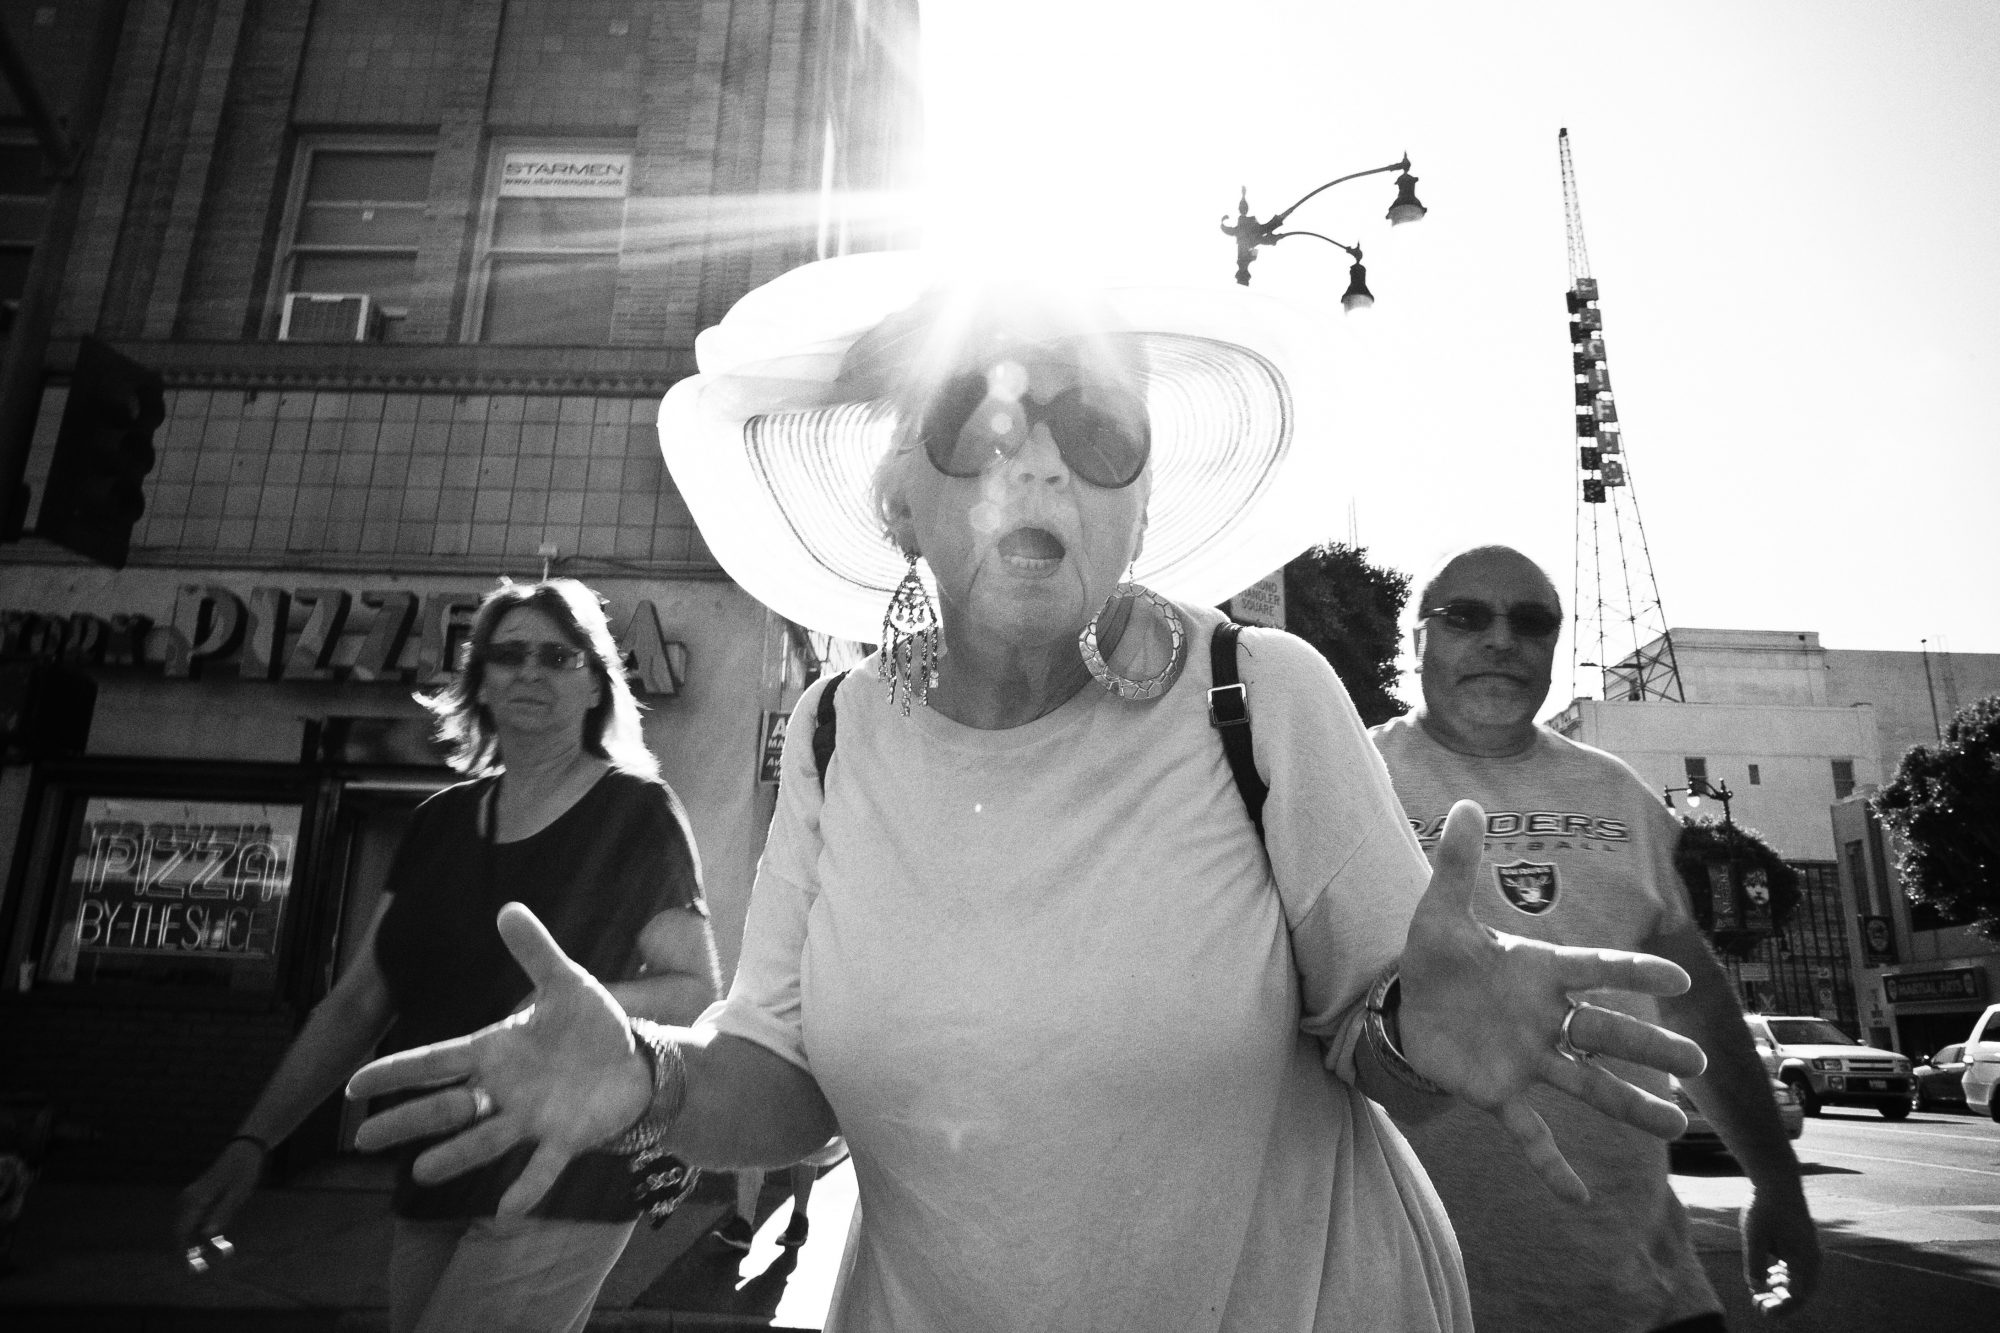 eric-kim-street-photography-jazz-hands-the-city-of-angels-2011